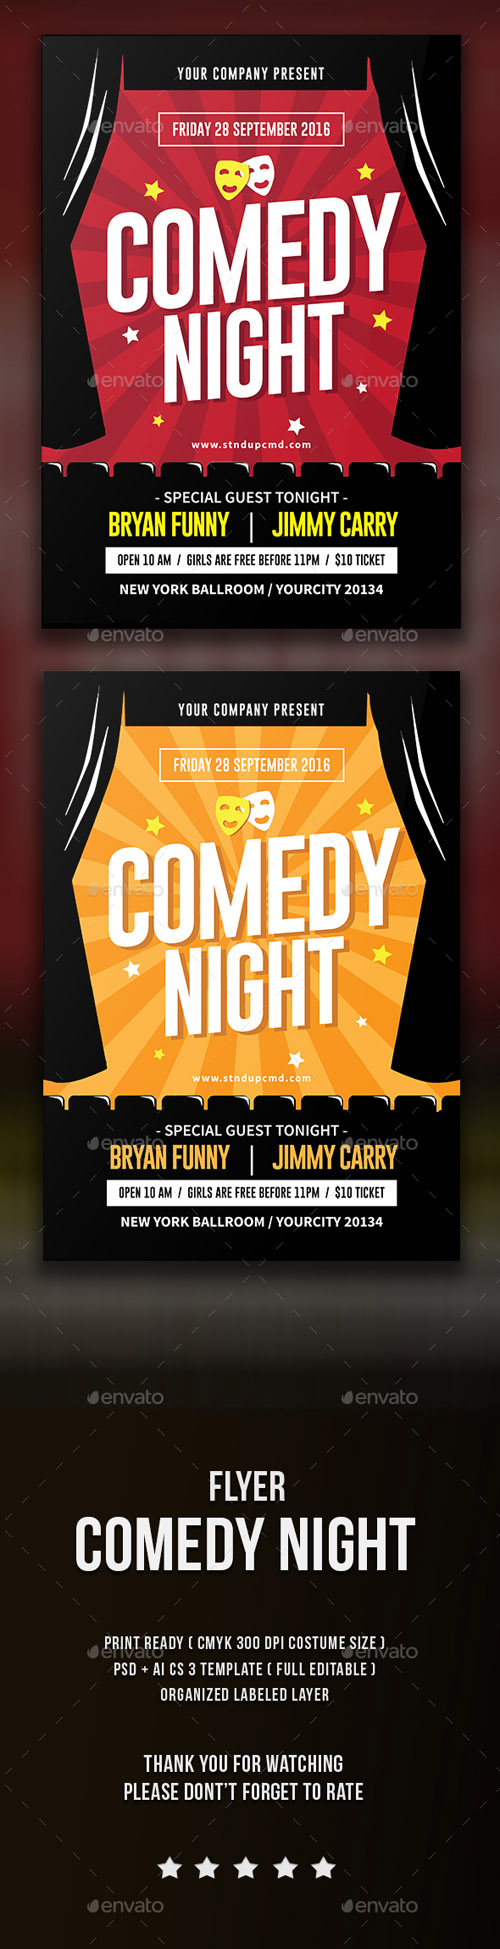 Comedy Night Flyer 15753696